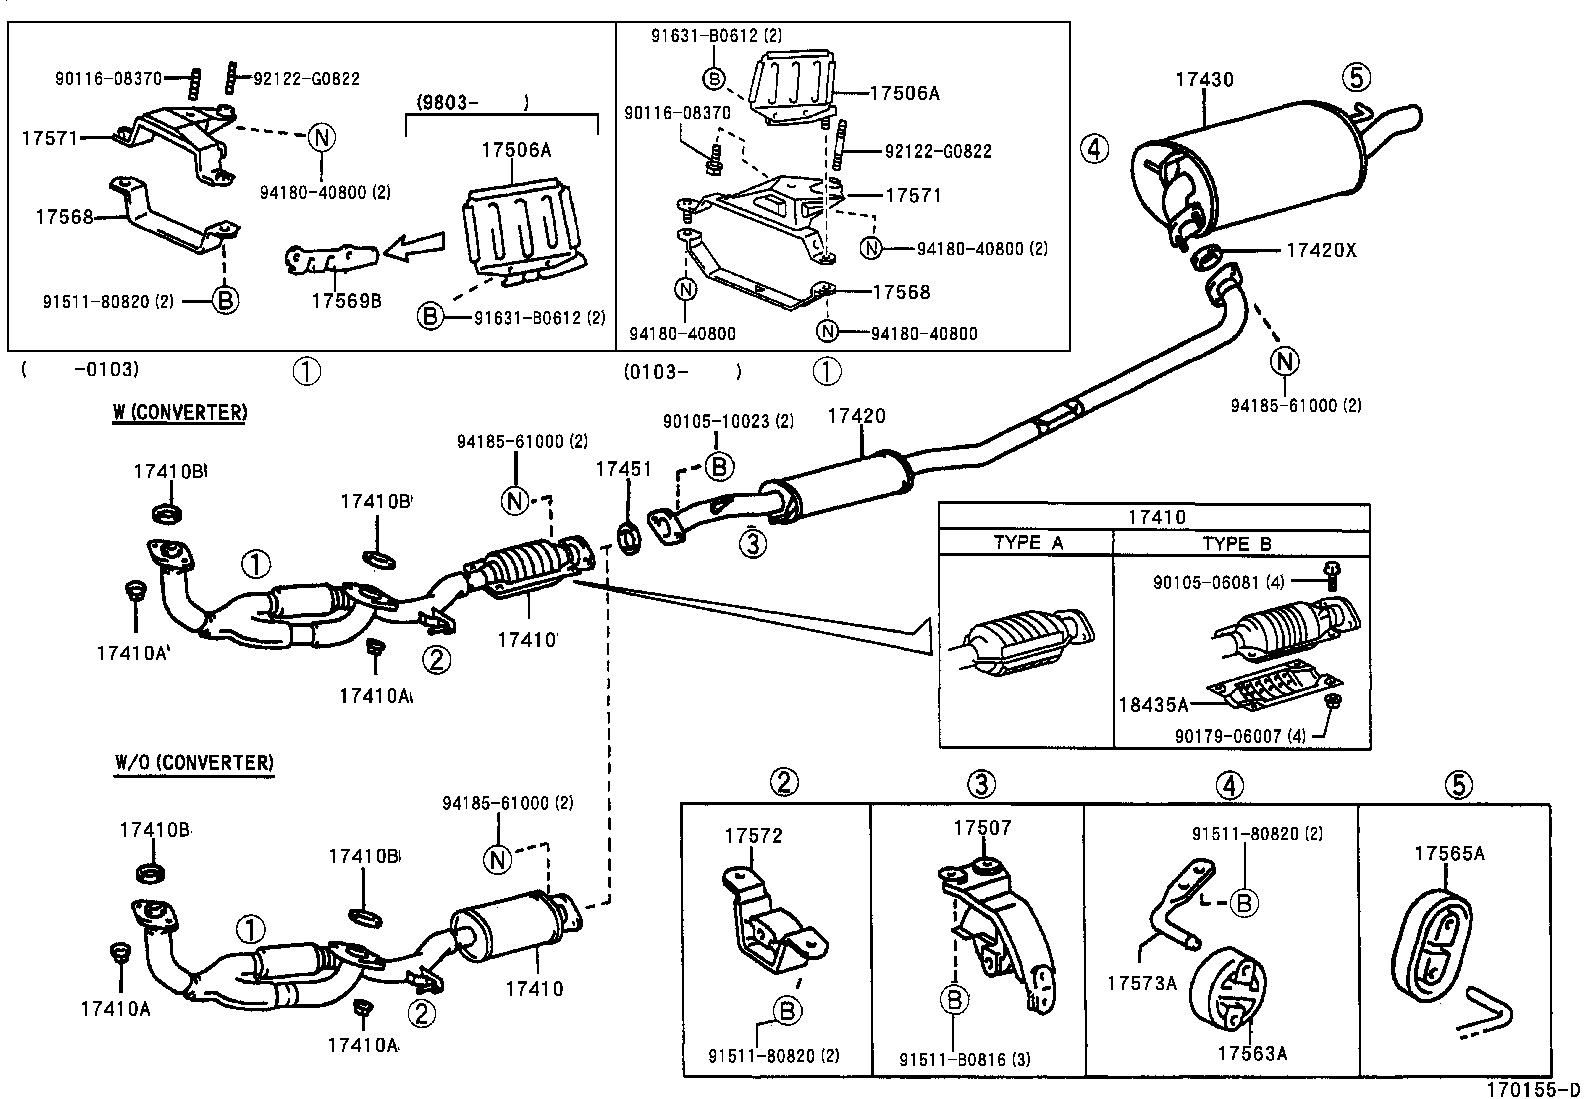 2002 Toyota Highlander Exhaust Diagram 2002 Toyota